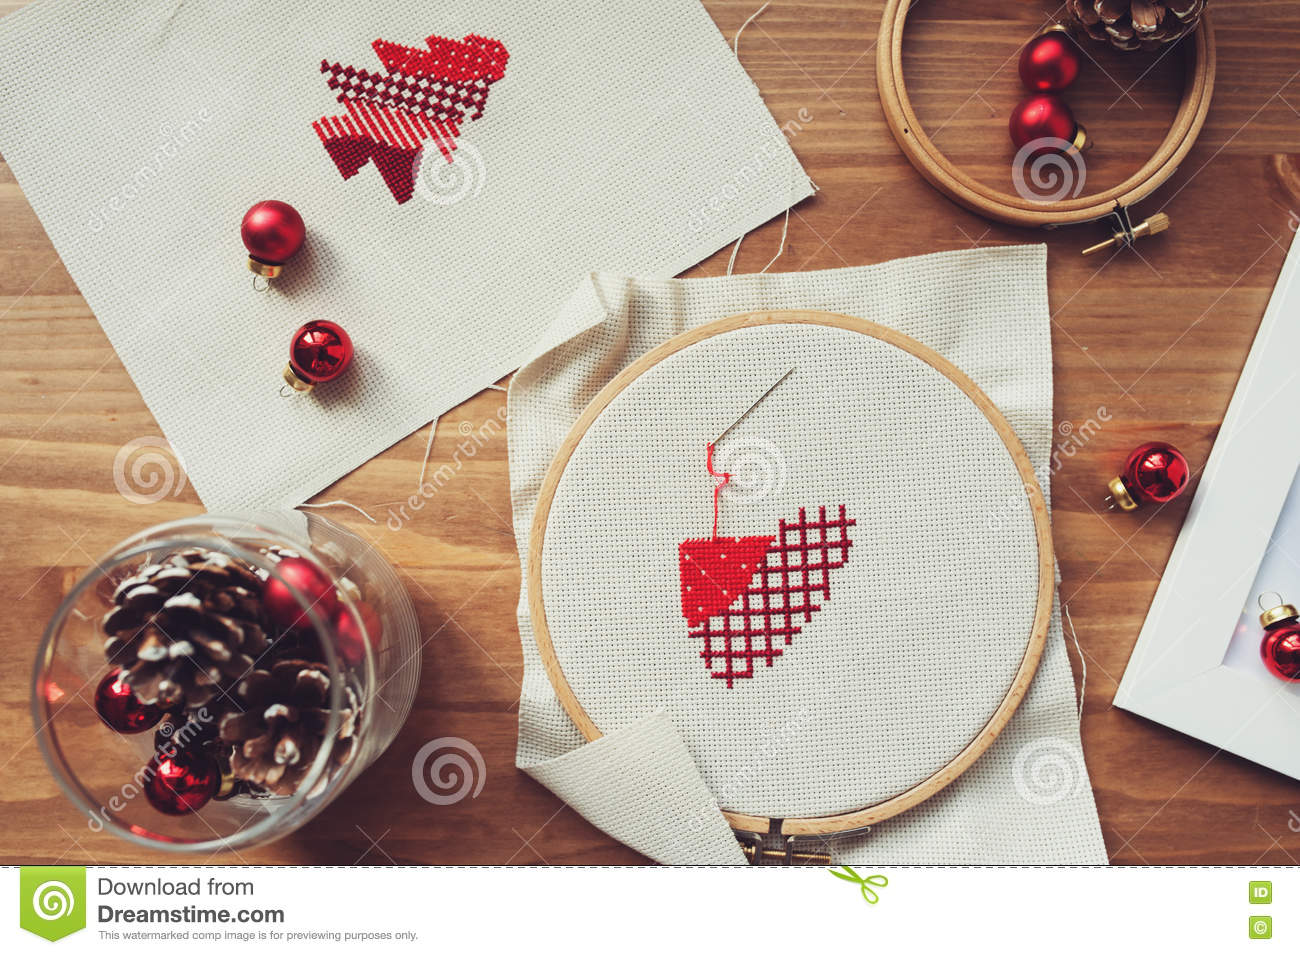 6 078 Cross Stitch Photos Free Royalty Free Stock Photos From Dreamstime,Sapphire Design Studio